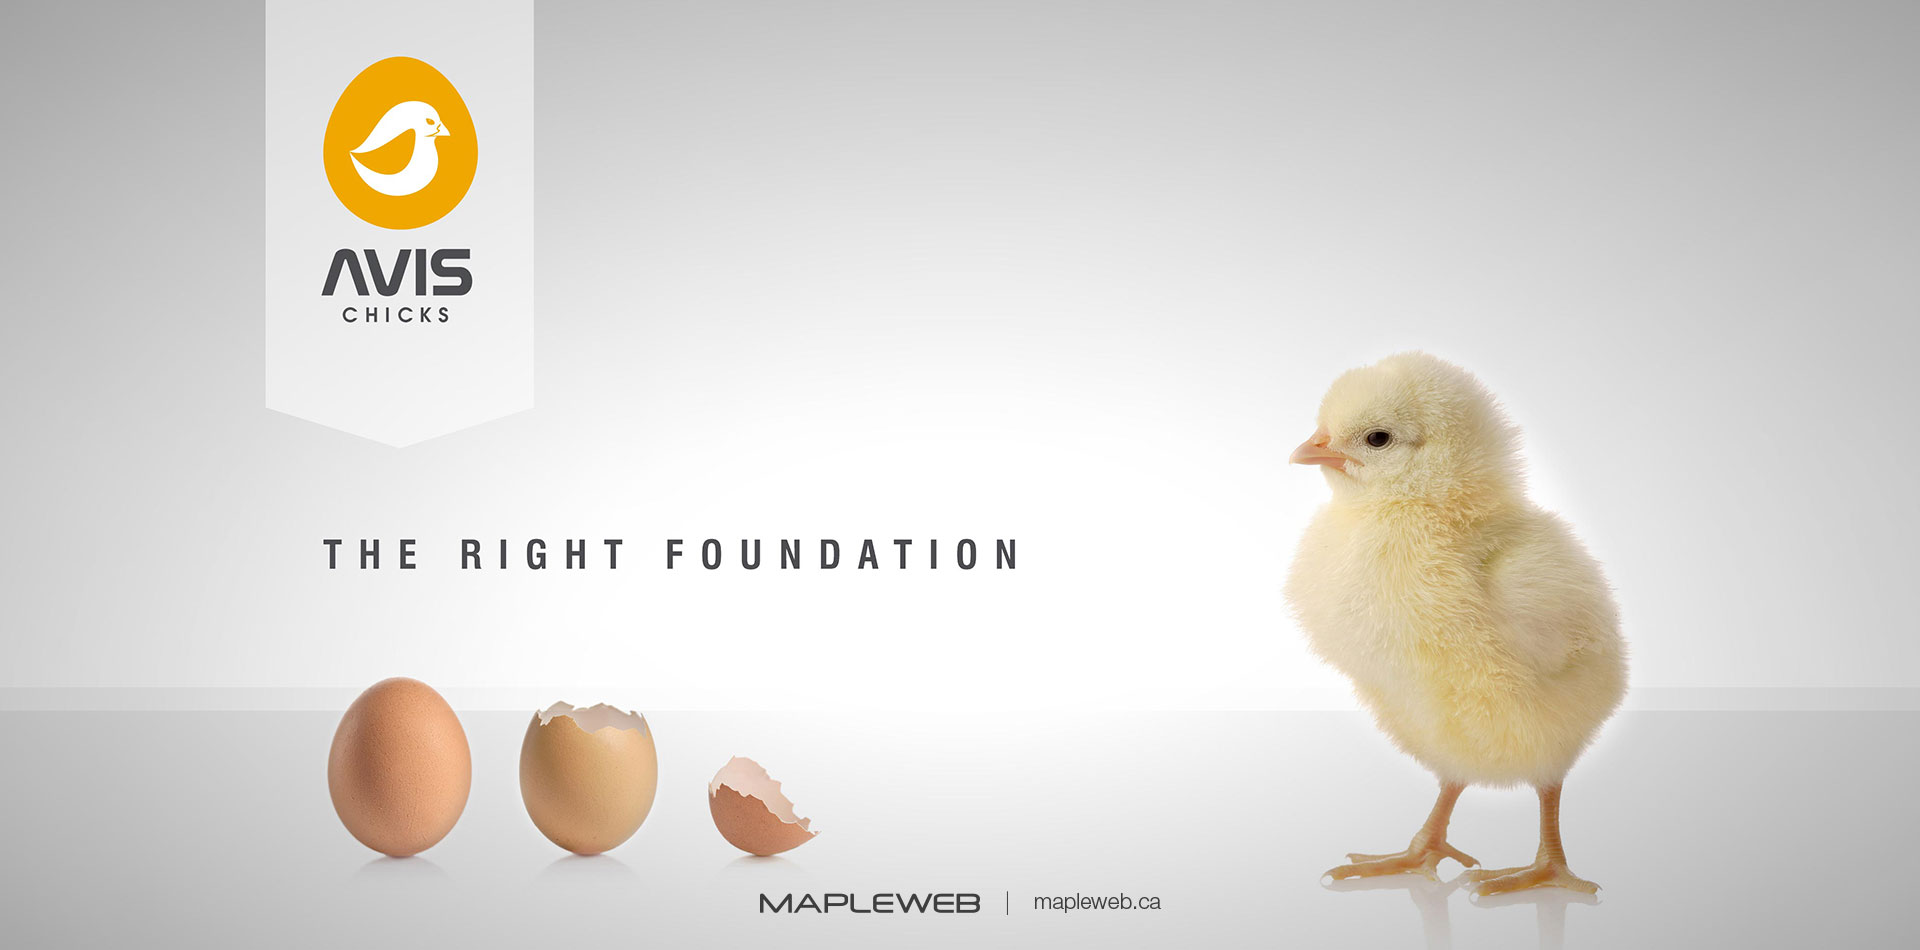 avis-chicks-Vancouver-brand-design-Vancouver-graphic-design-by-mapleweb-canada-chick-eggs-light-grey-background